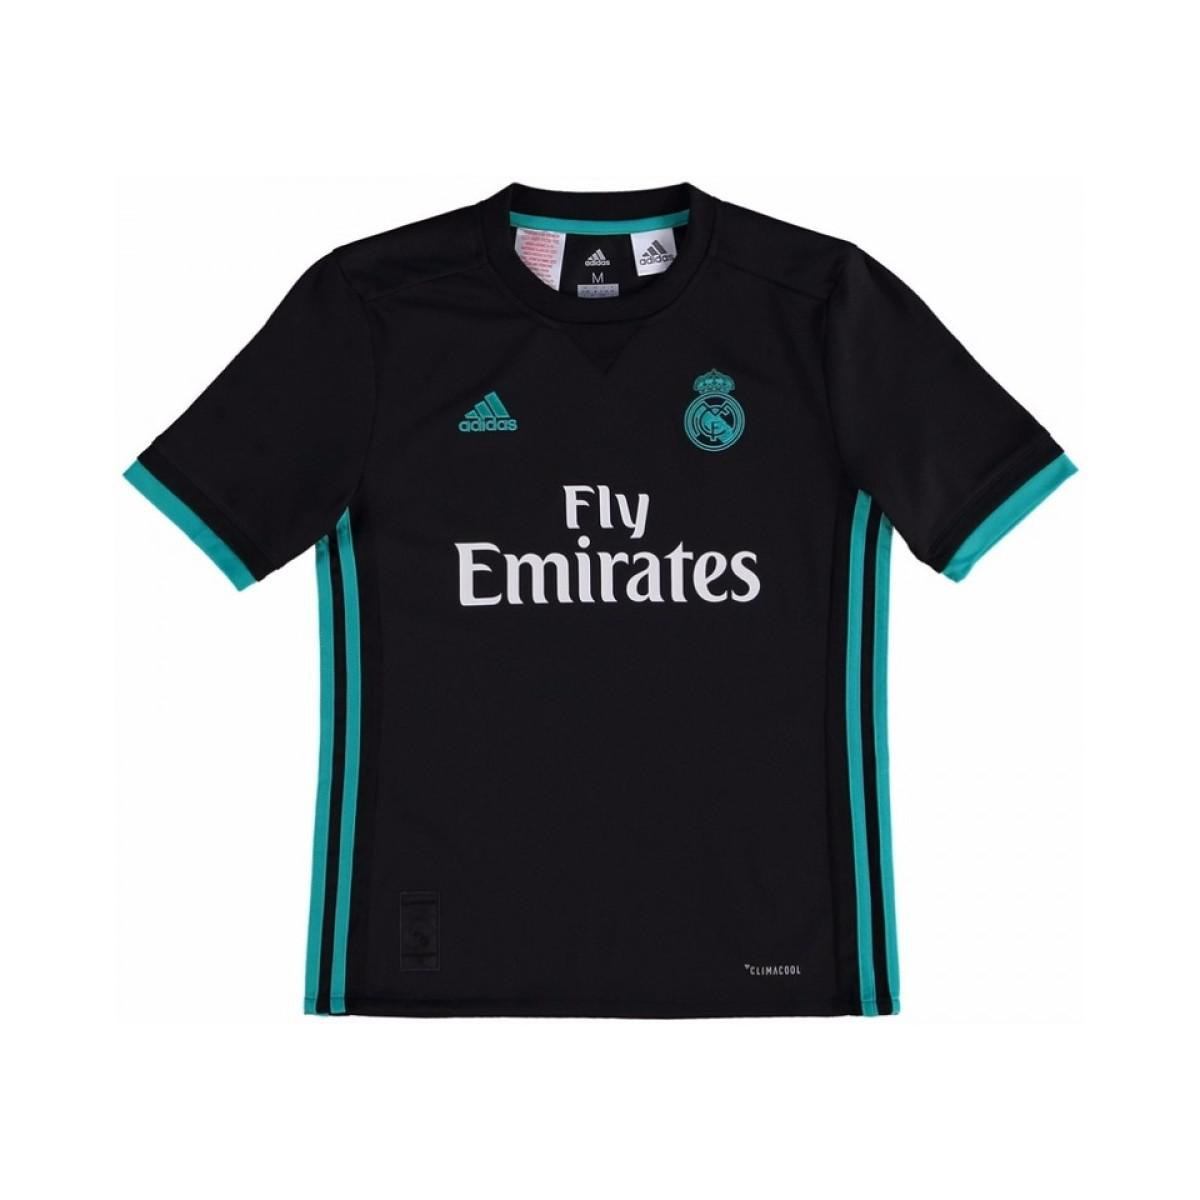 824d6f8f0 adidas 2017-18 Real Madrid Away Shirt - Kids (marcelo 12) Women s T ...